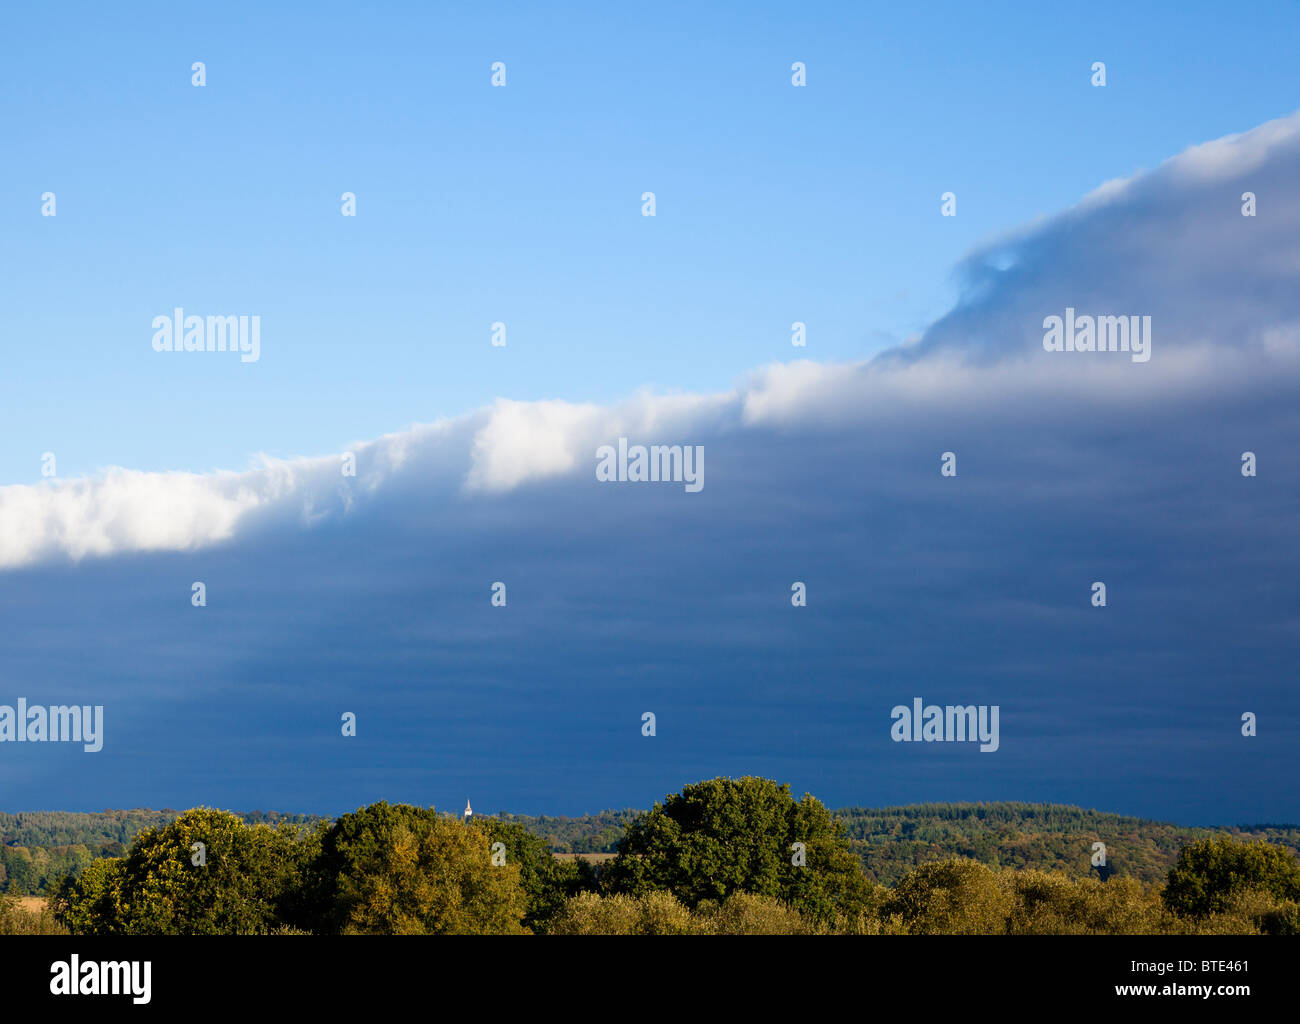 Cold weather front approaching with stormy sky - Stock Image